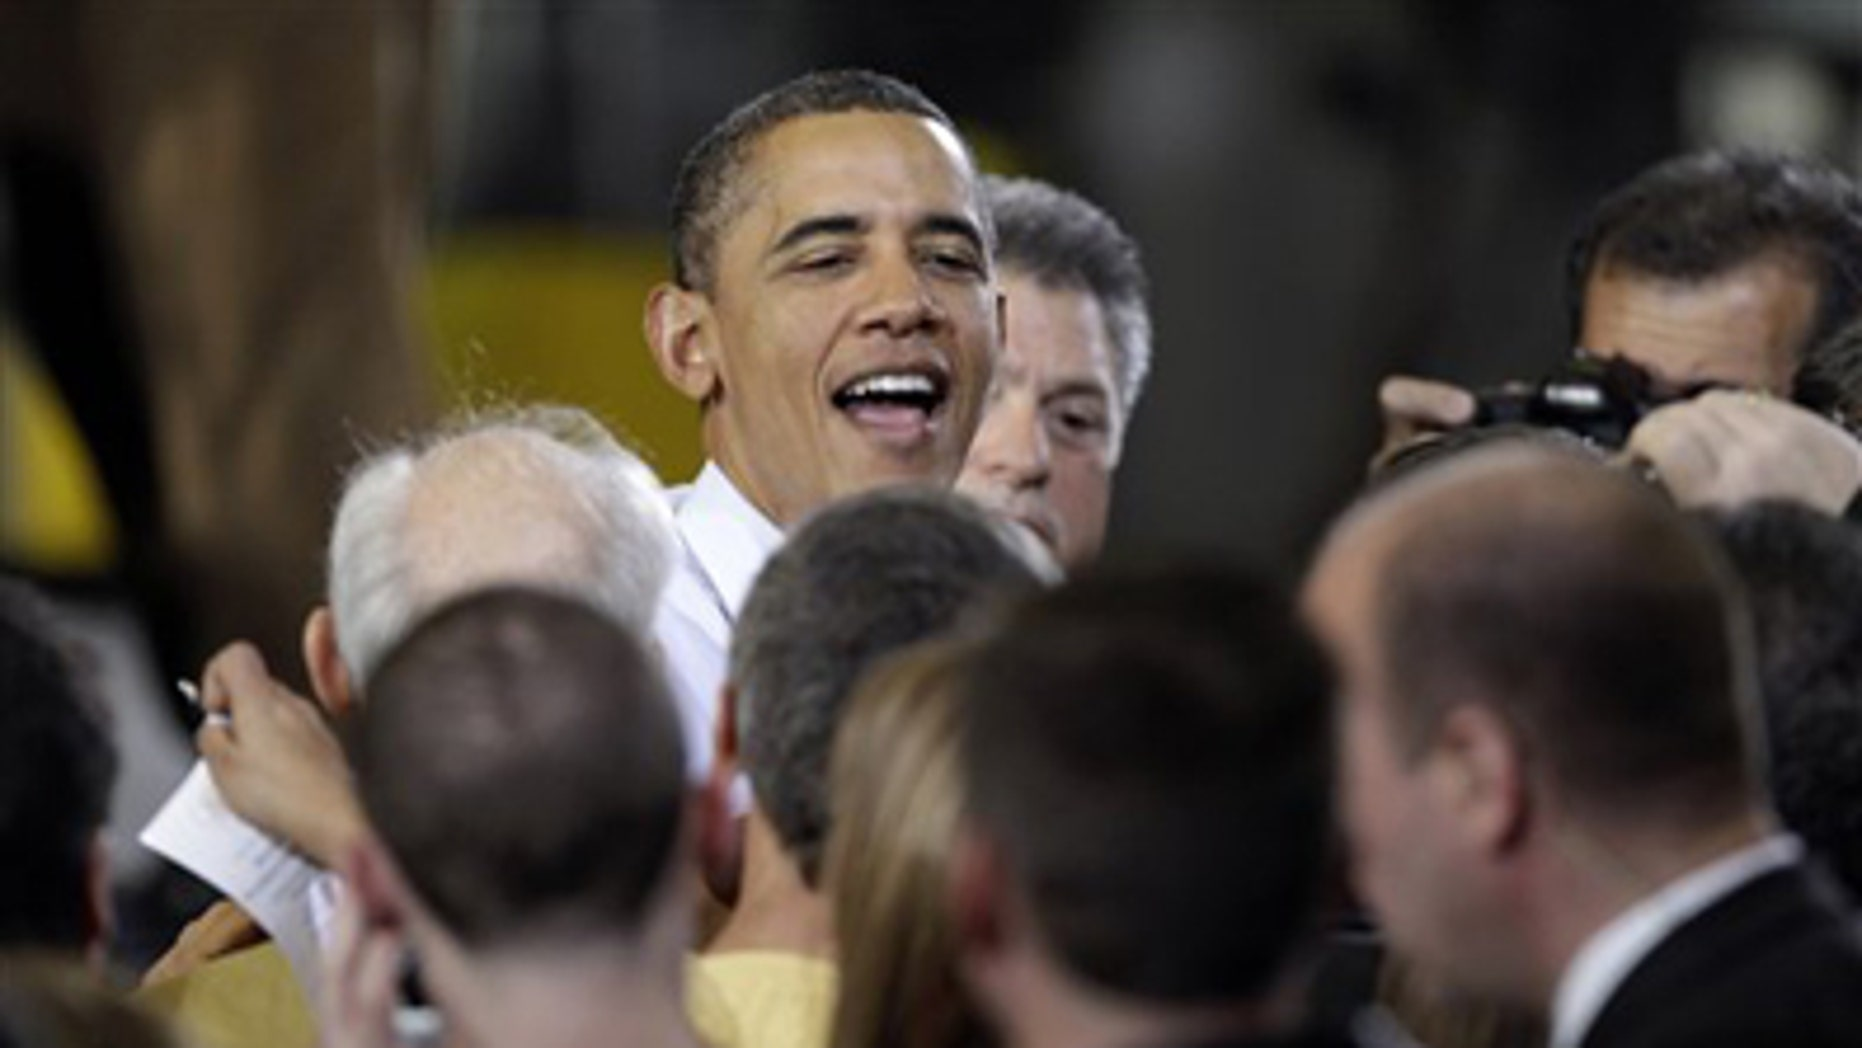 Jan. 25, 2012: President Obama is greeted after speaking about manufacturing jobs, at the Conveyor Engineering & Manufacturing plant, in Cedar Rapids, Iowa.